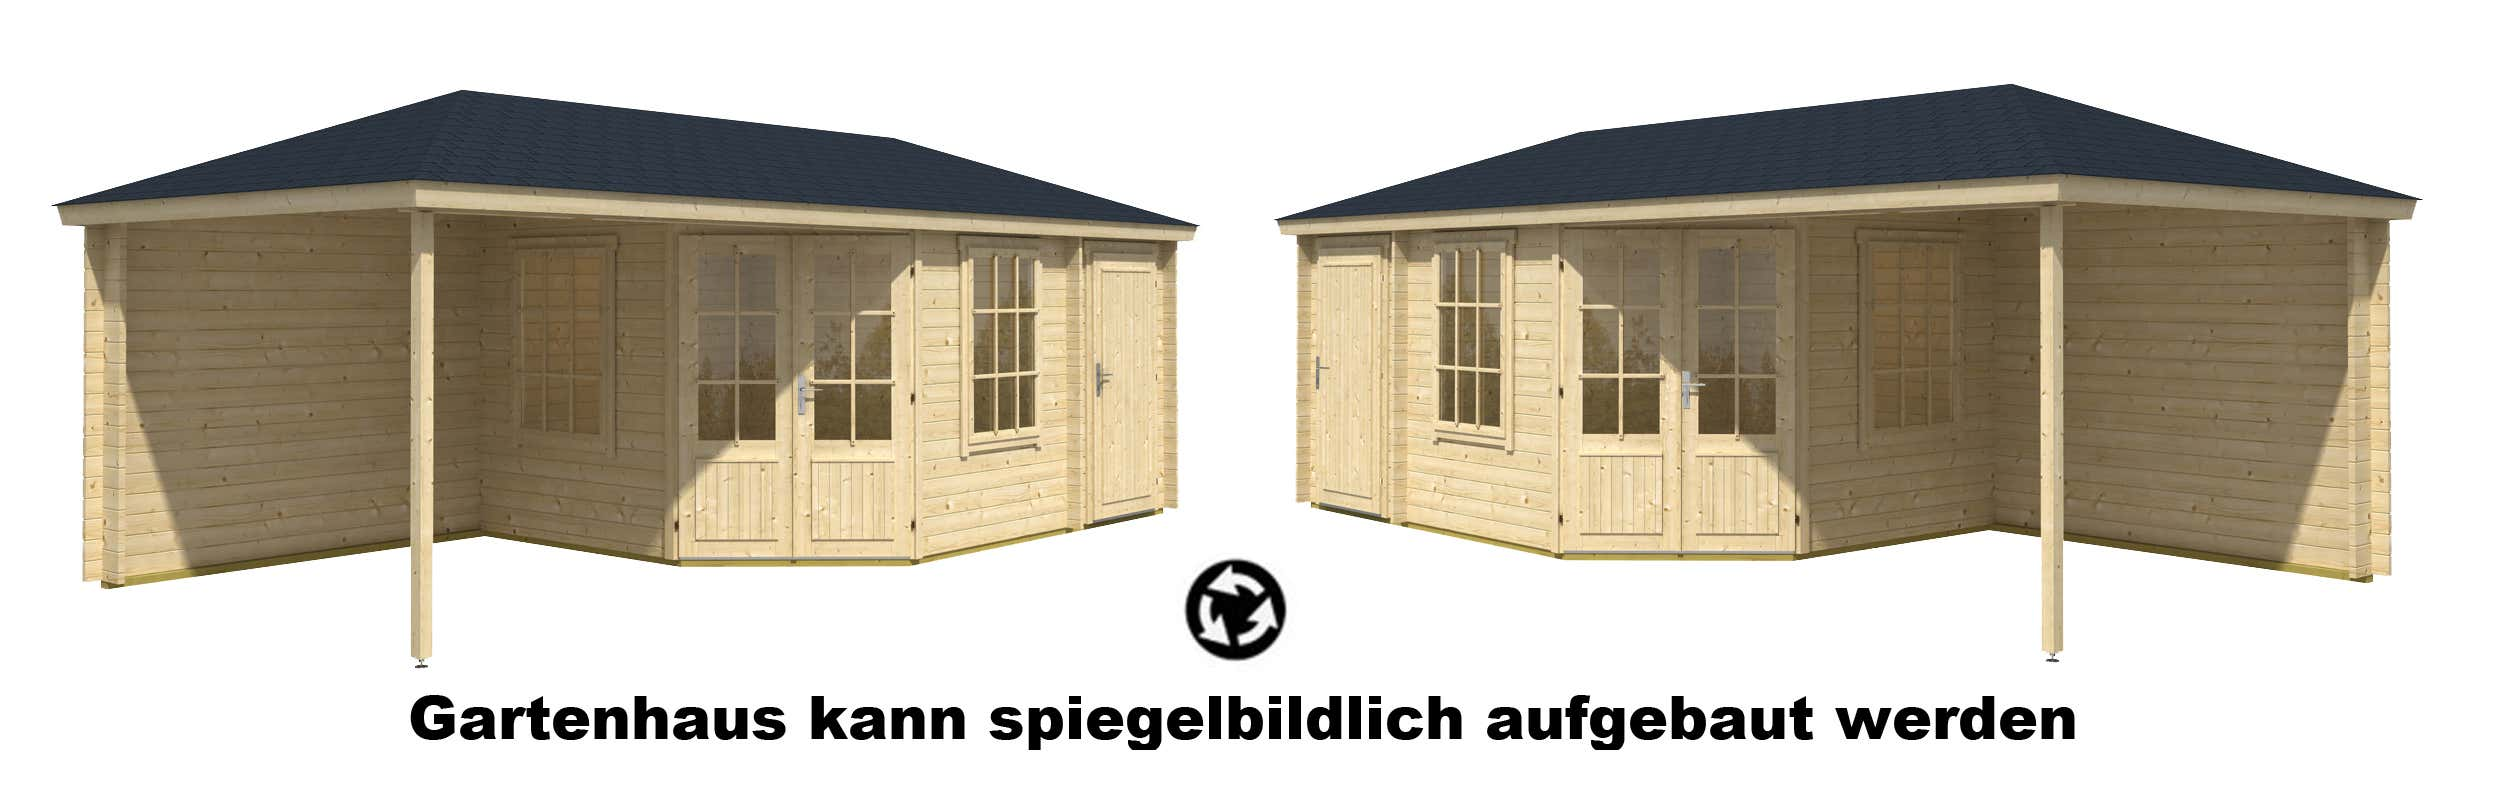 gartenhaus rhein 40 mit anbau my blog. Black Bedroom Furniture Sets. Home Design Ideas